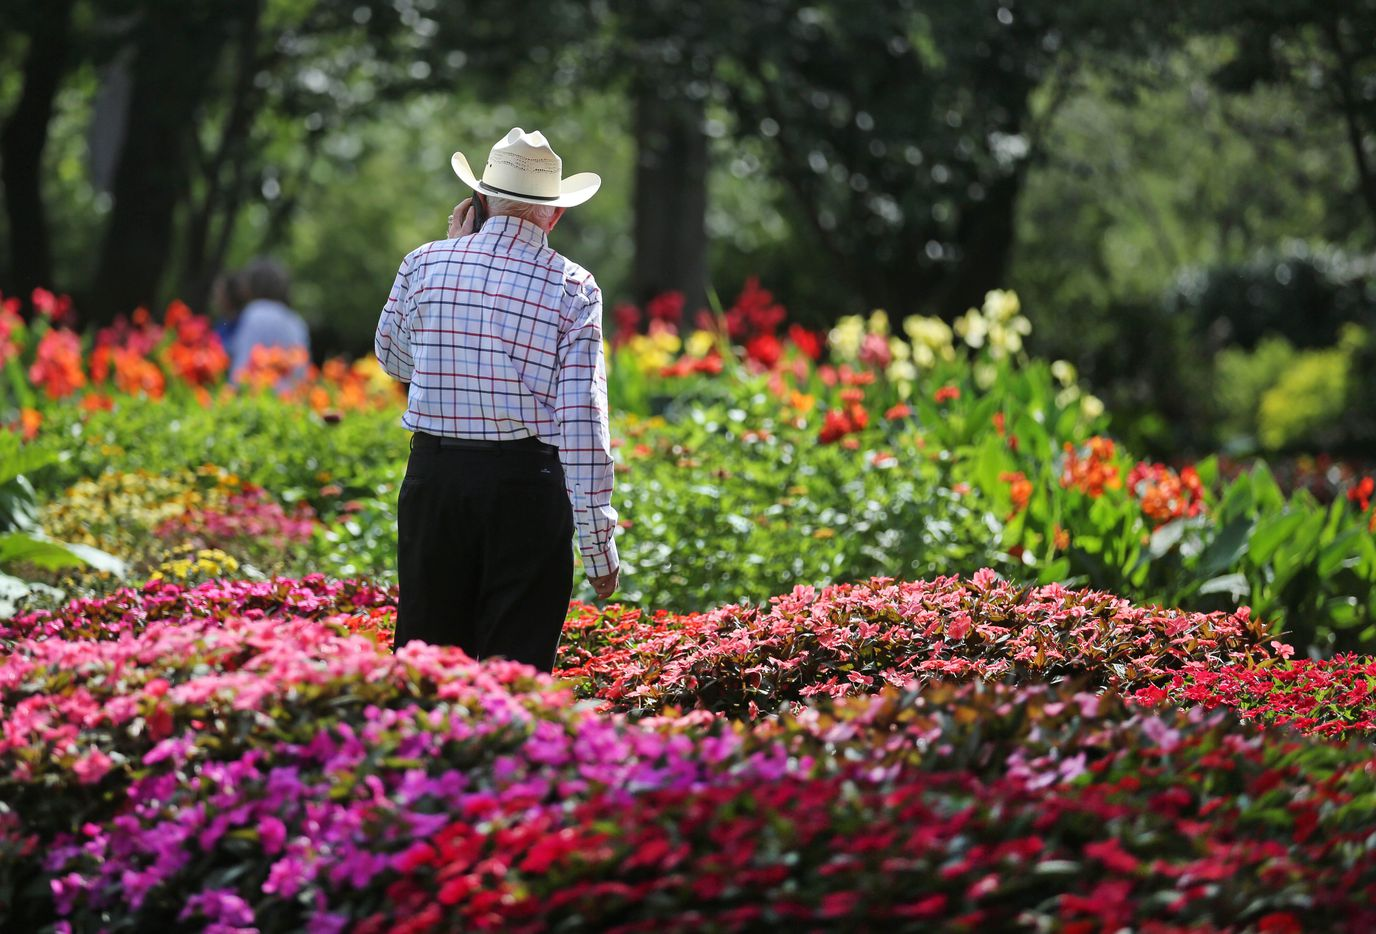 Phil Huey surveyed the scene at one of the trial beds during the Plant Trials Field Day at the Dallas Arboretum and Botanical Garden in June 2017. What can be seen at the arboretum depends on the time of year.